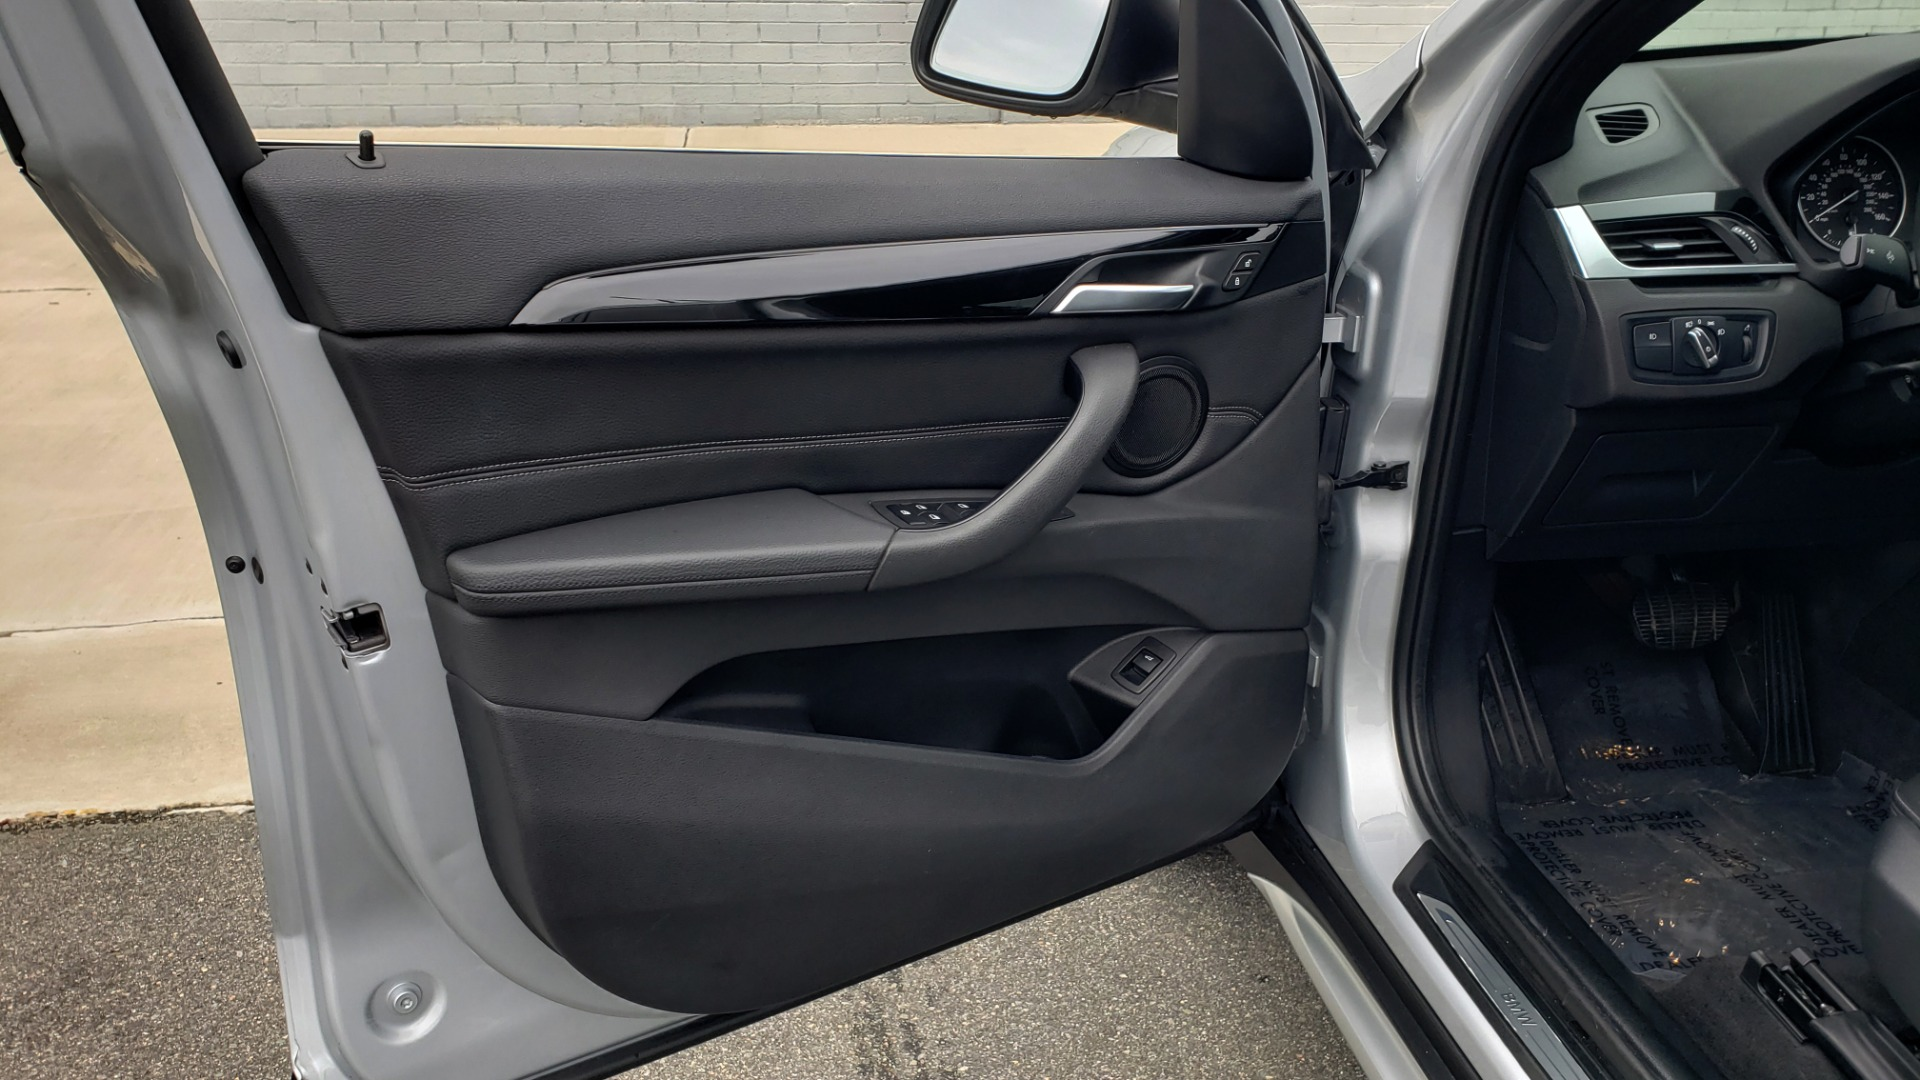 Used 2018 BMW X1 XDRIVE38I / NAV / CONV PKG / PANO-ROOF / HTD STS / REARVIEW for sale $28,995 at Formula Imports in Charlotte NC 28227 30